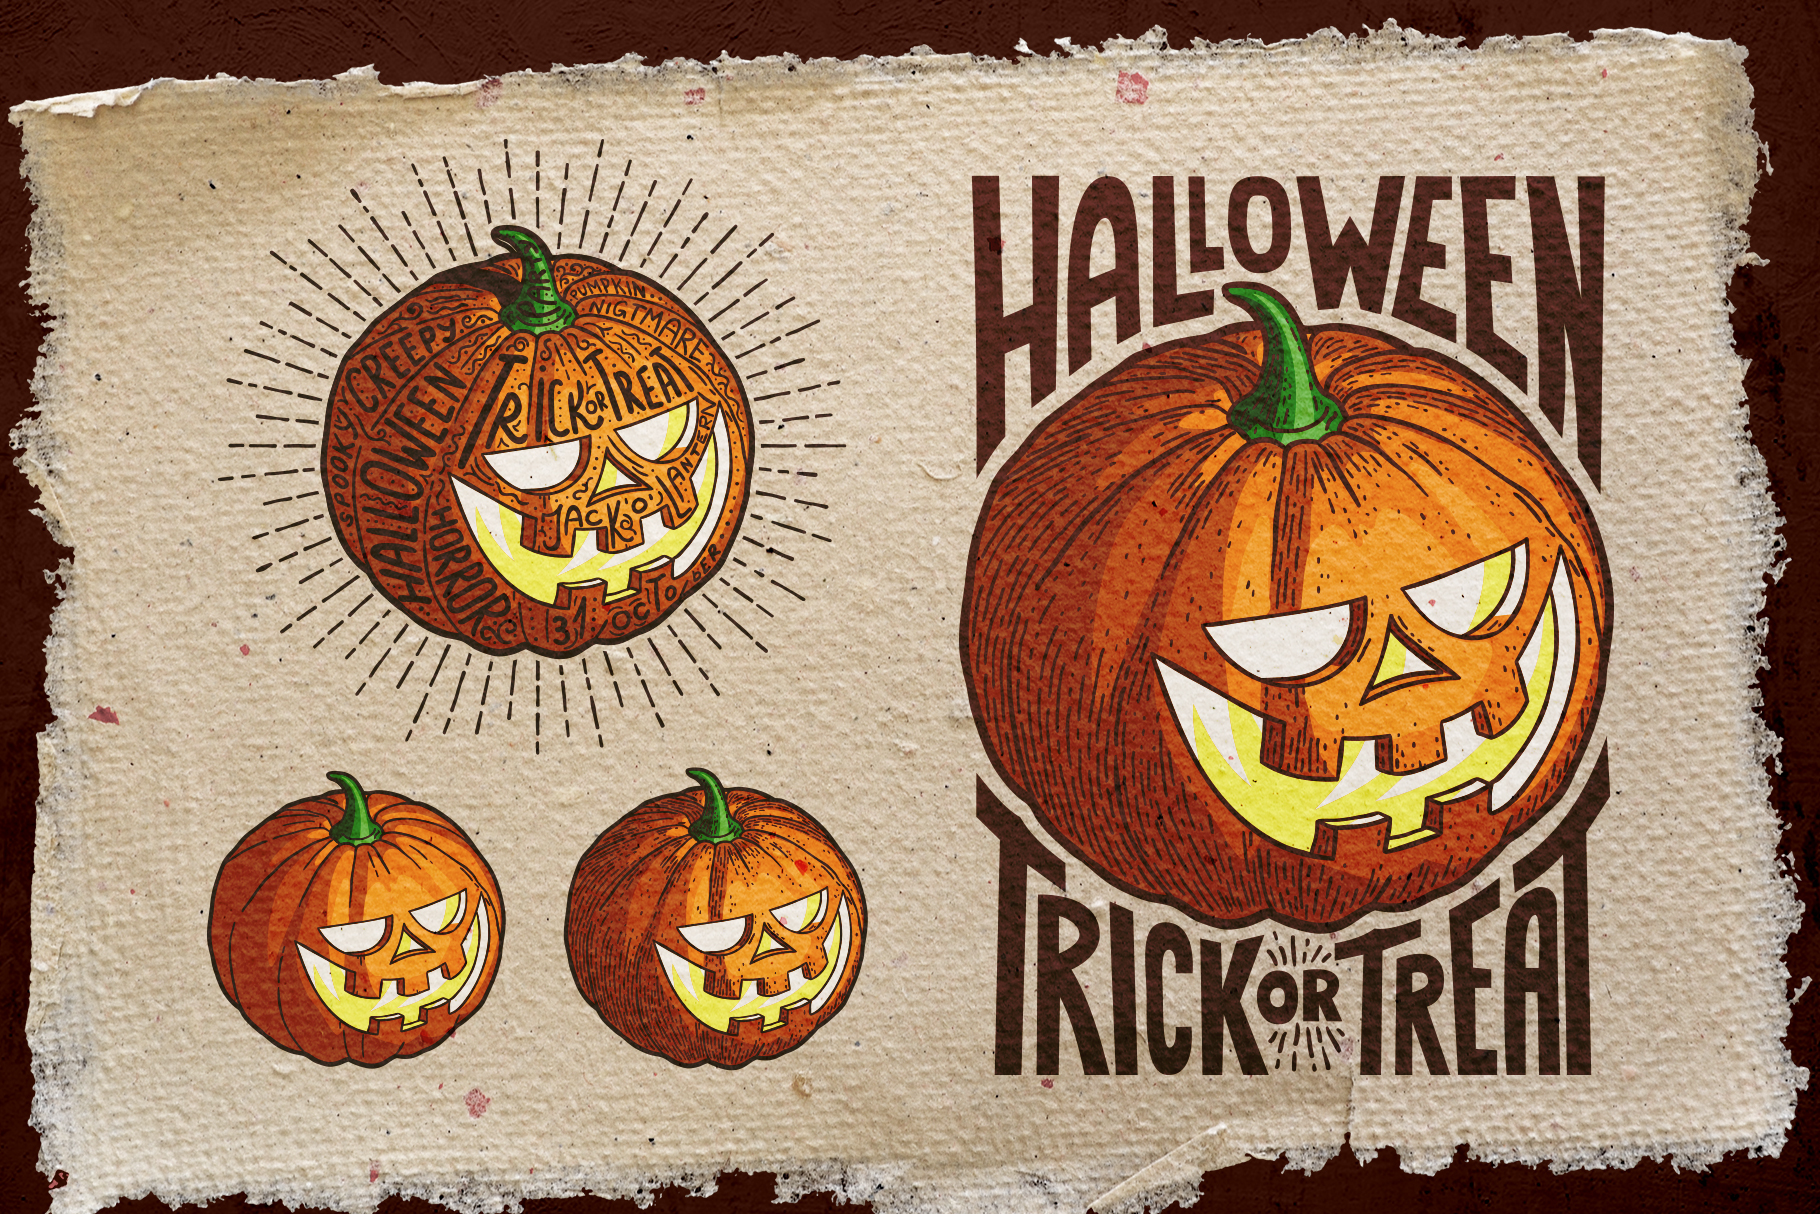 Halloween Pumpkin Engraving Style example image 4